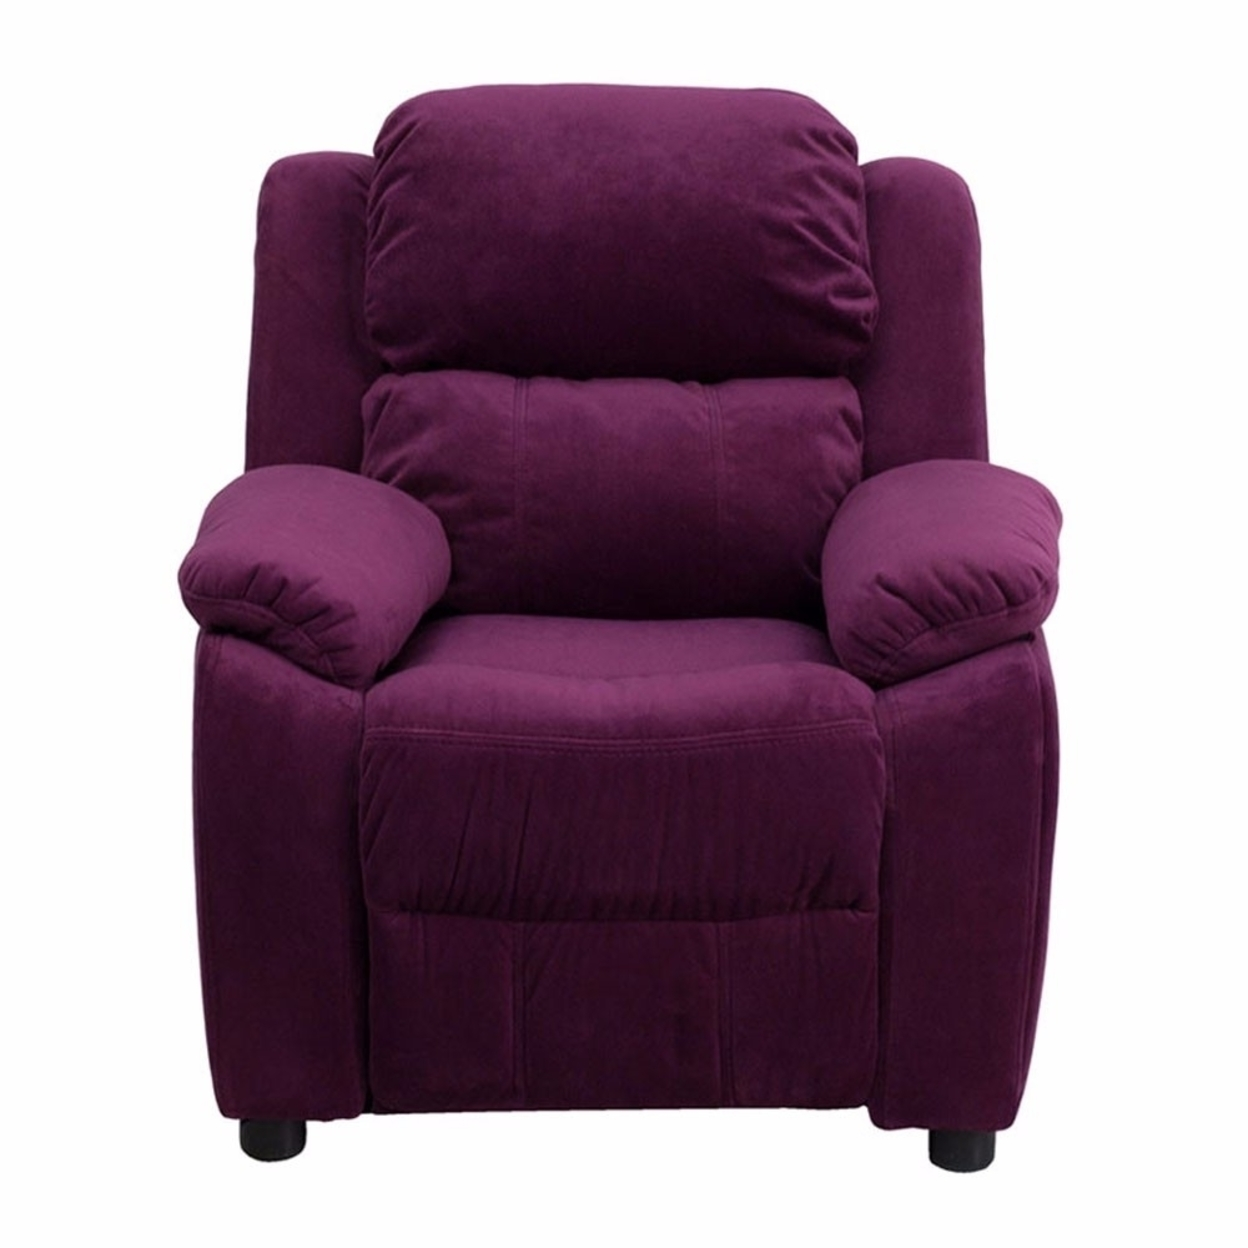 Flash Furniture Deluxe Heavily Padded Contemporary Purple Microfiber Kids Recliner with Storage Arms [863-Bt-7985-Kid-Mic-Pur-Gg] 59e46013e224613cc06919bd